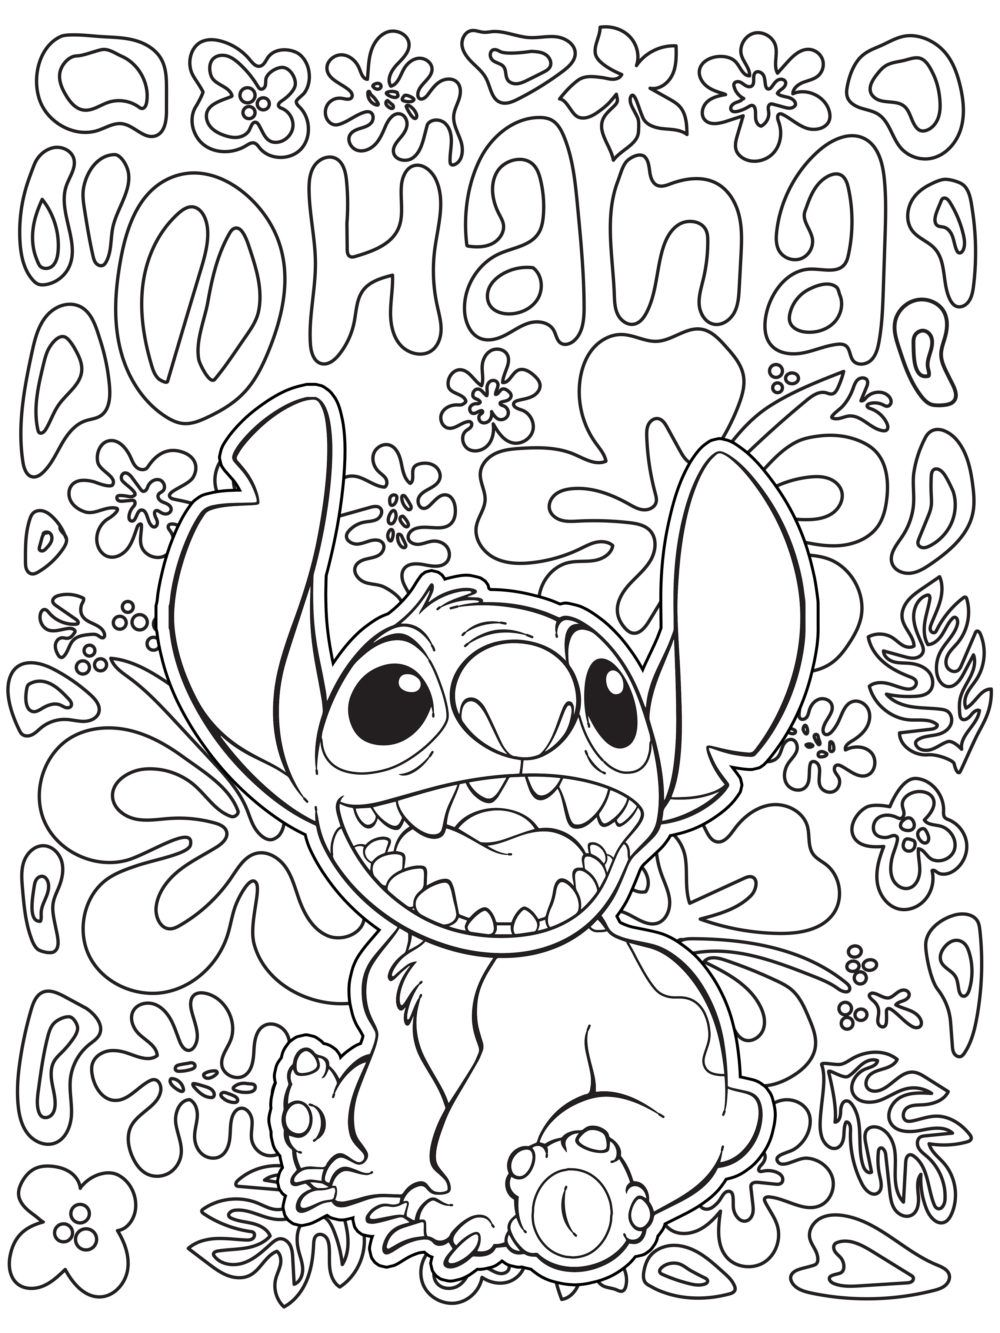 Celebrate National Coloring Book Day with Disney Style Lilo & Stitch printable coloring page